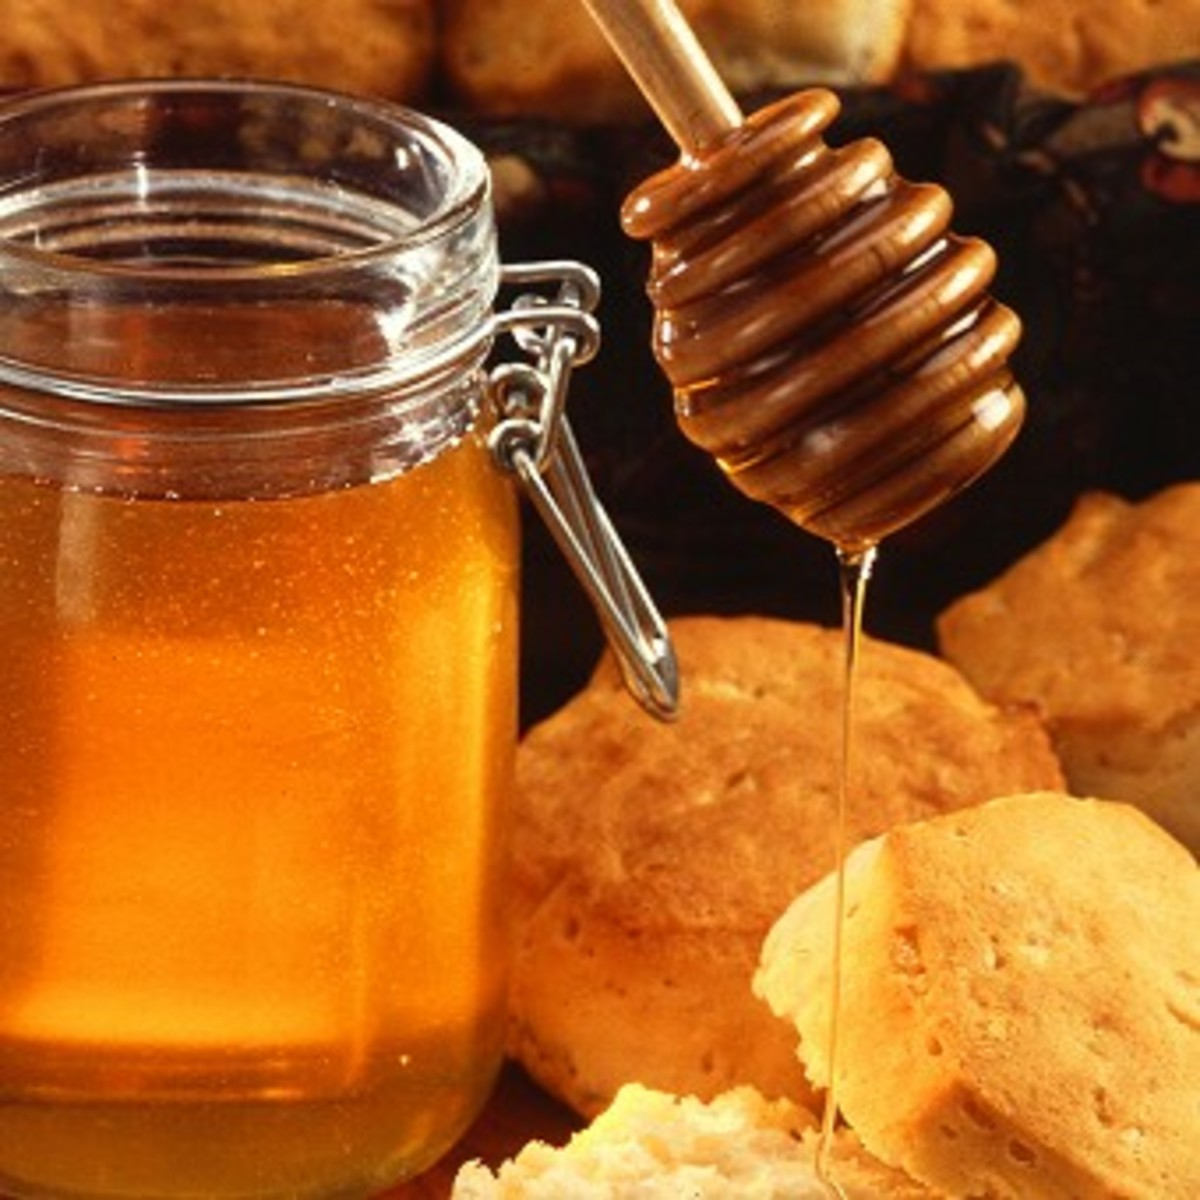 Honey is used in many foods as a sweetner